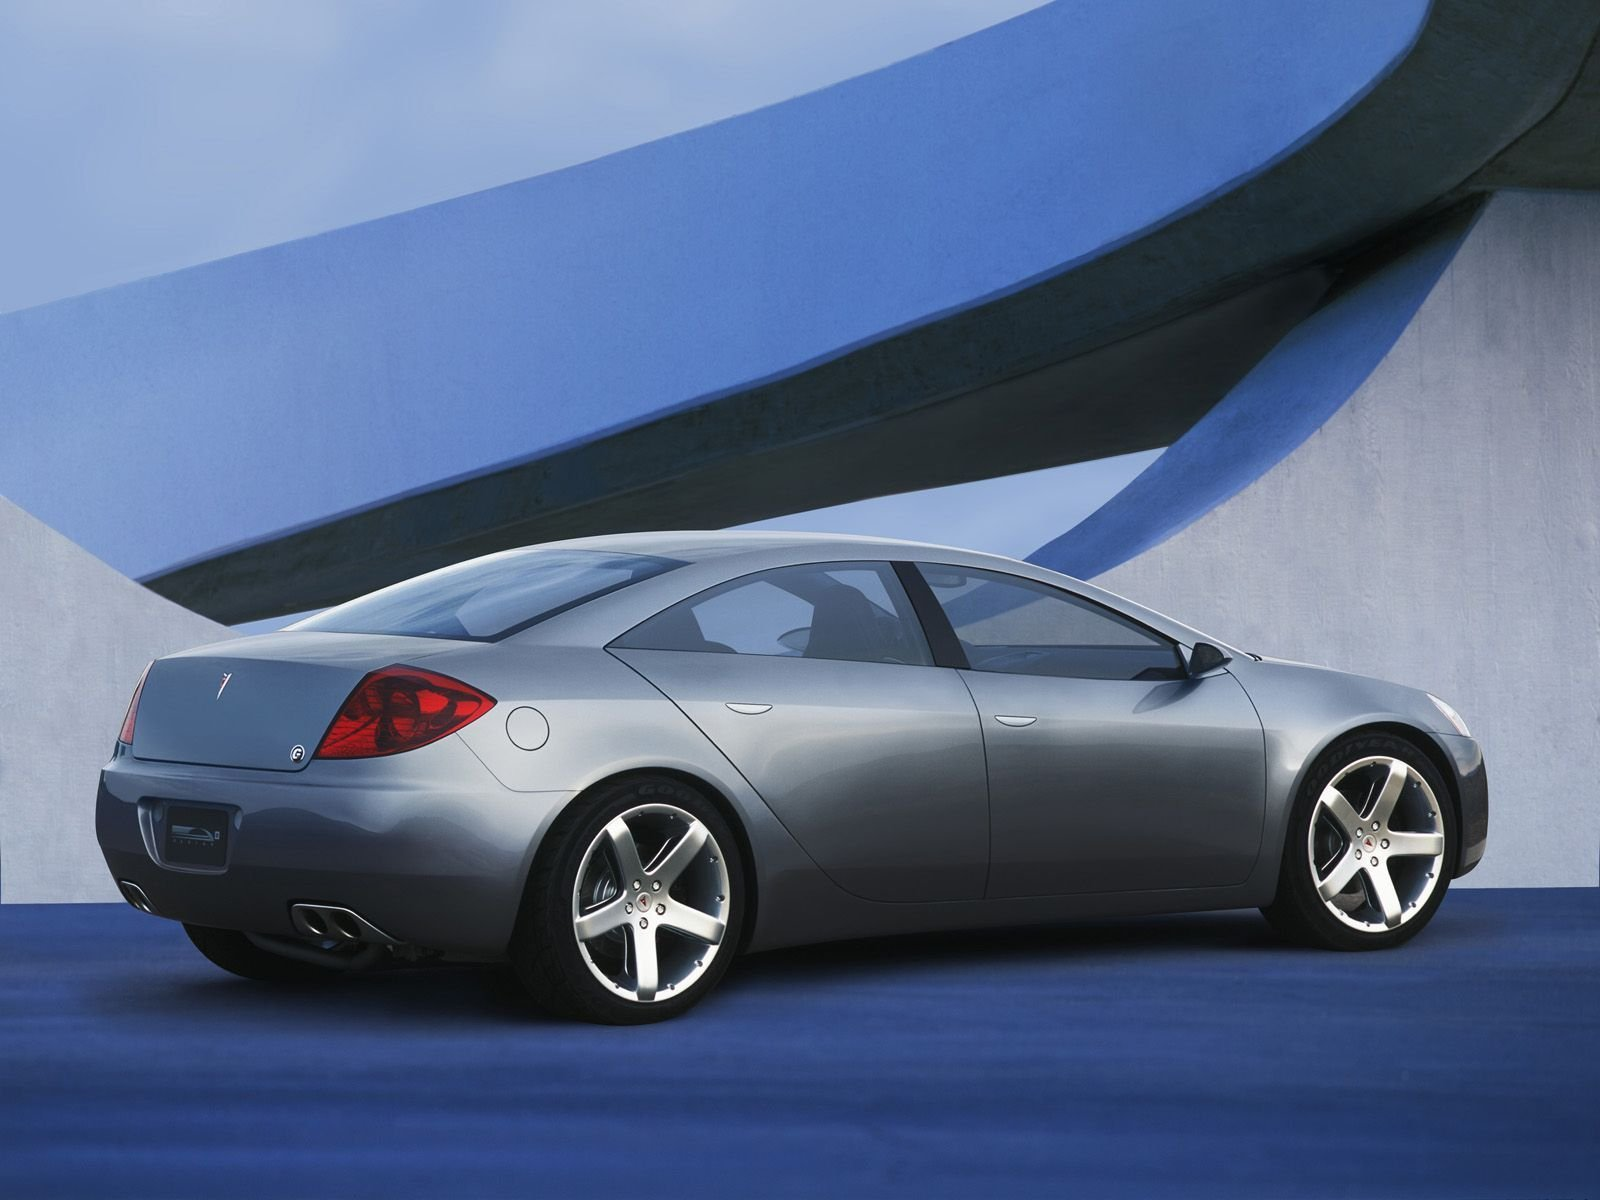 2007 pontiac g6 picture 35282 car review top speed. Black Bedroom Furniture Sets. Home Design Ideas